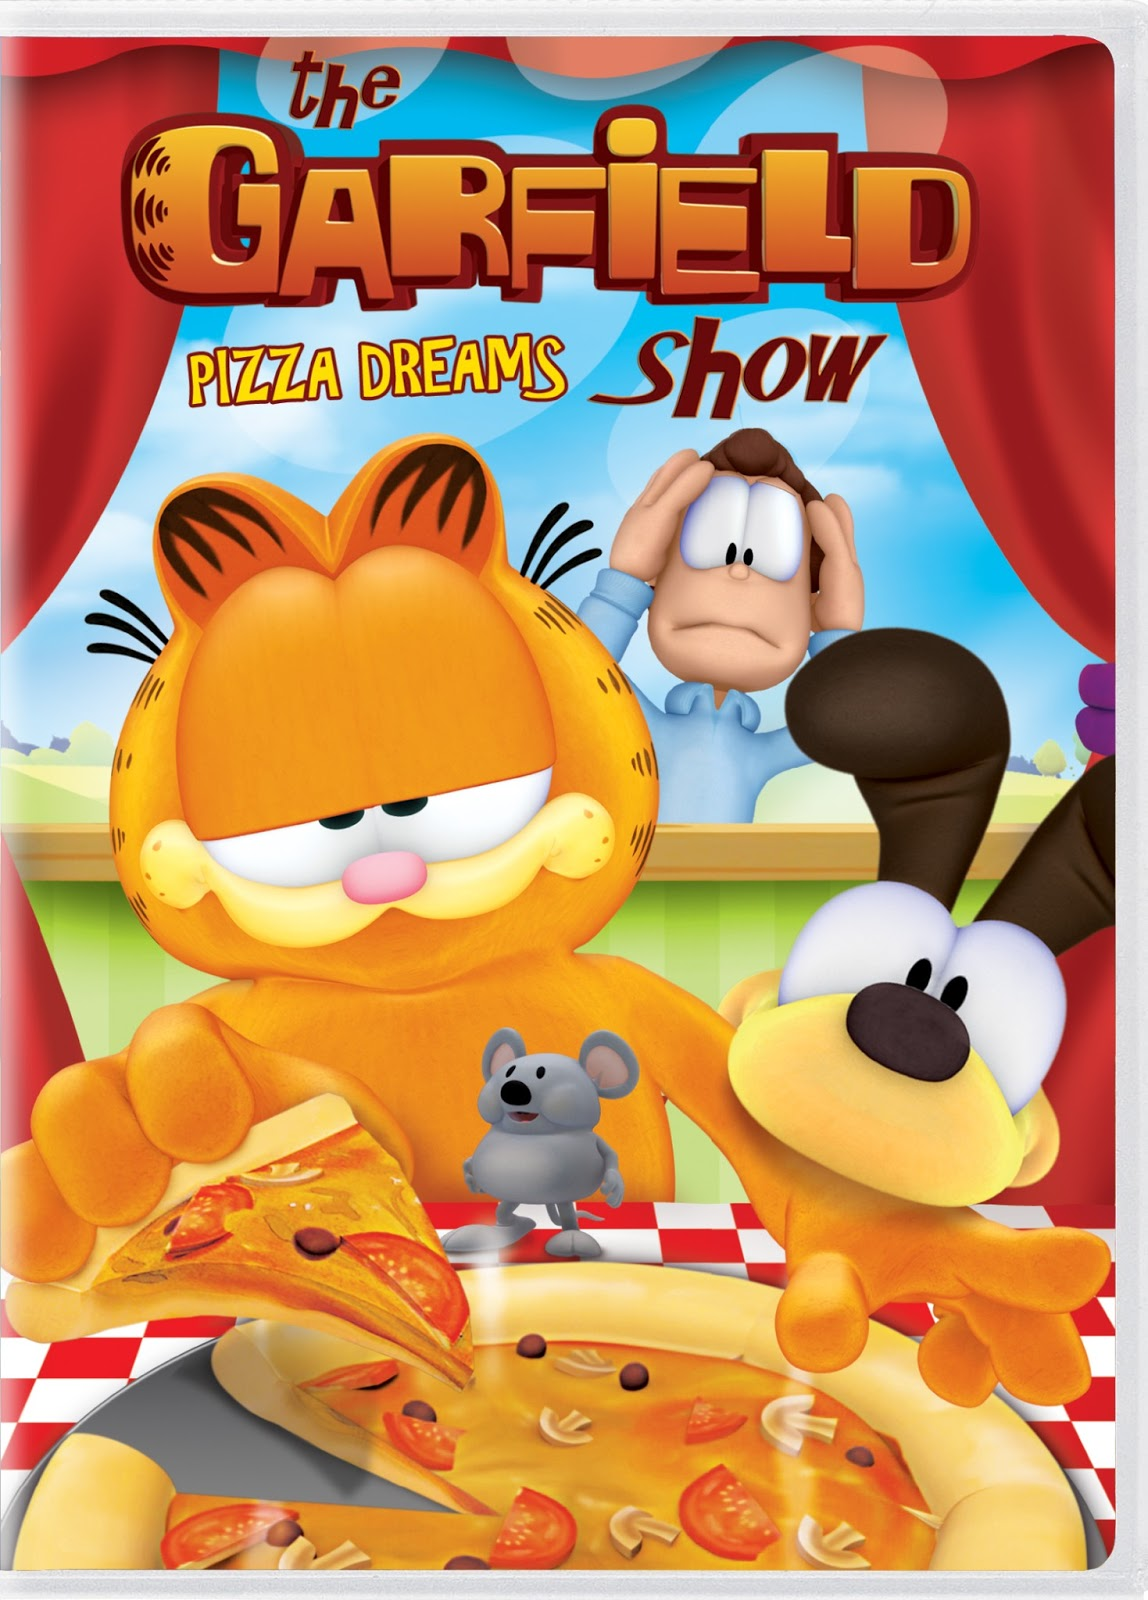 The Garfield Show Pizza Dreams Dvd Giveaway Mommy S Block Party